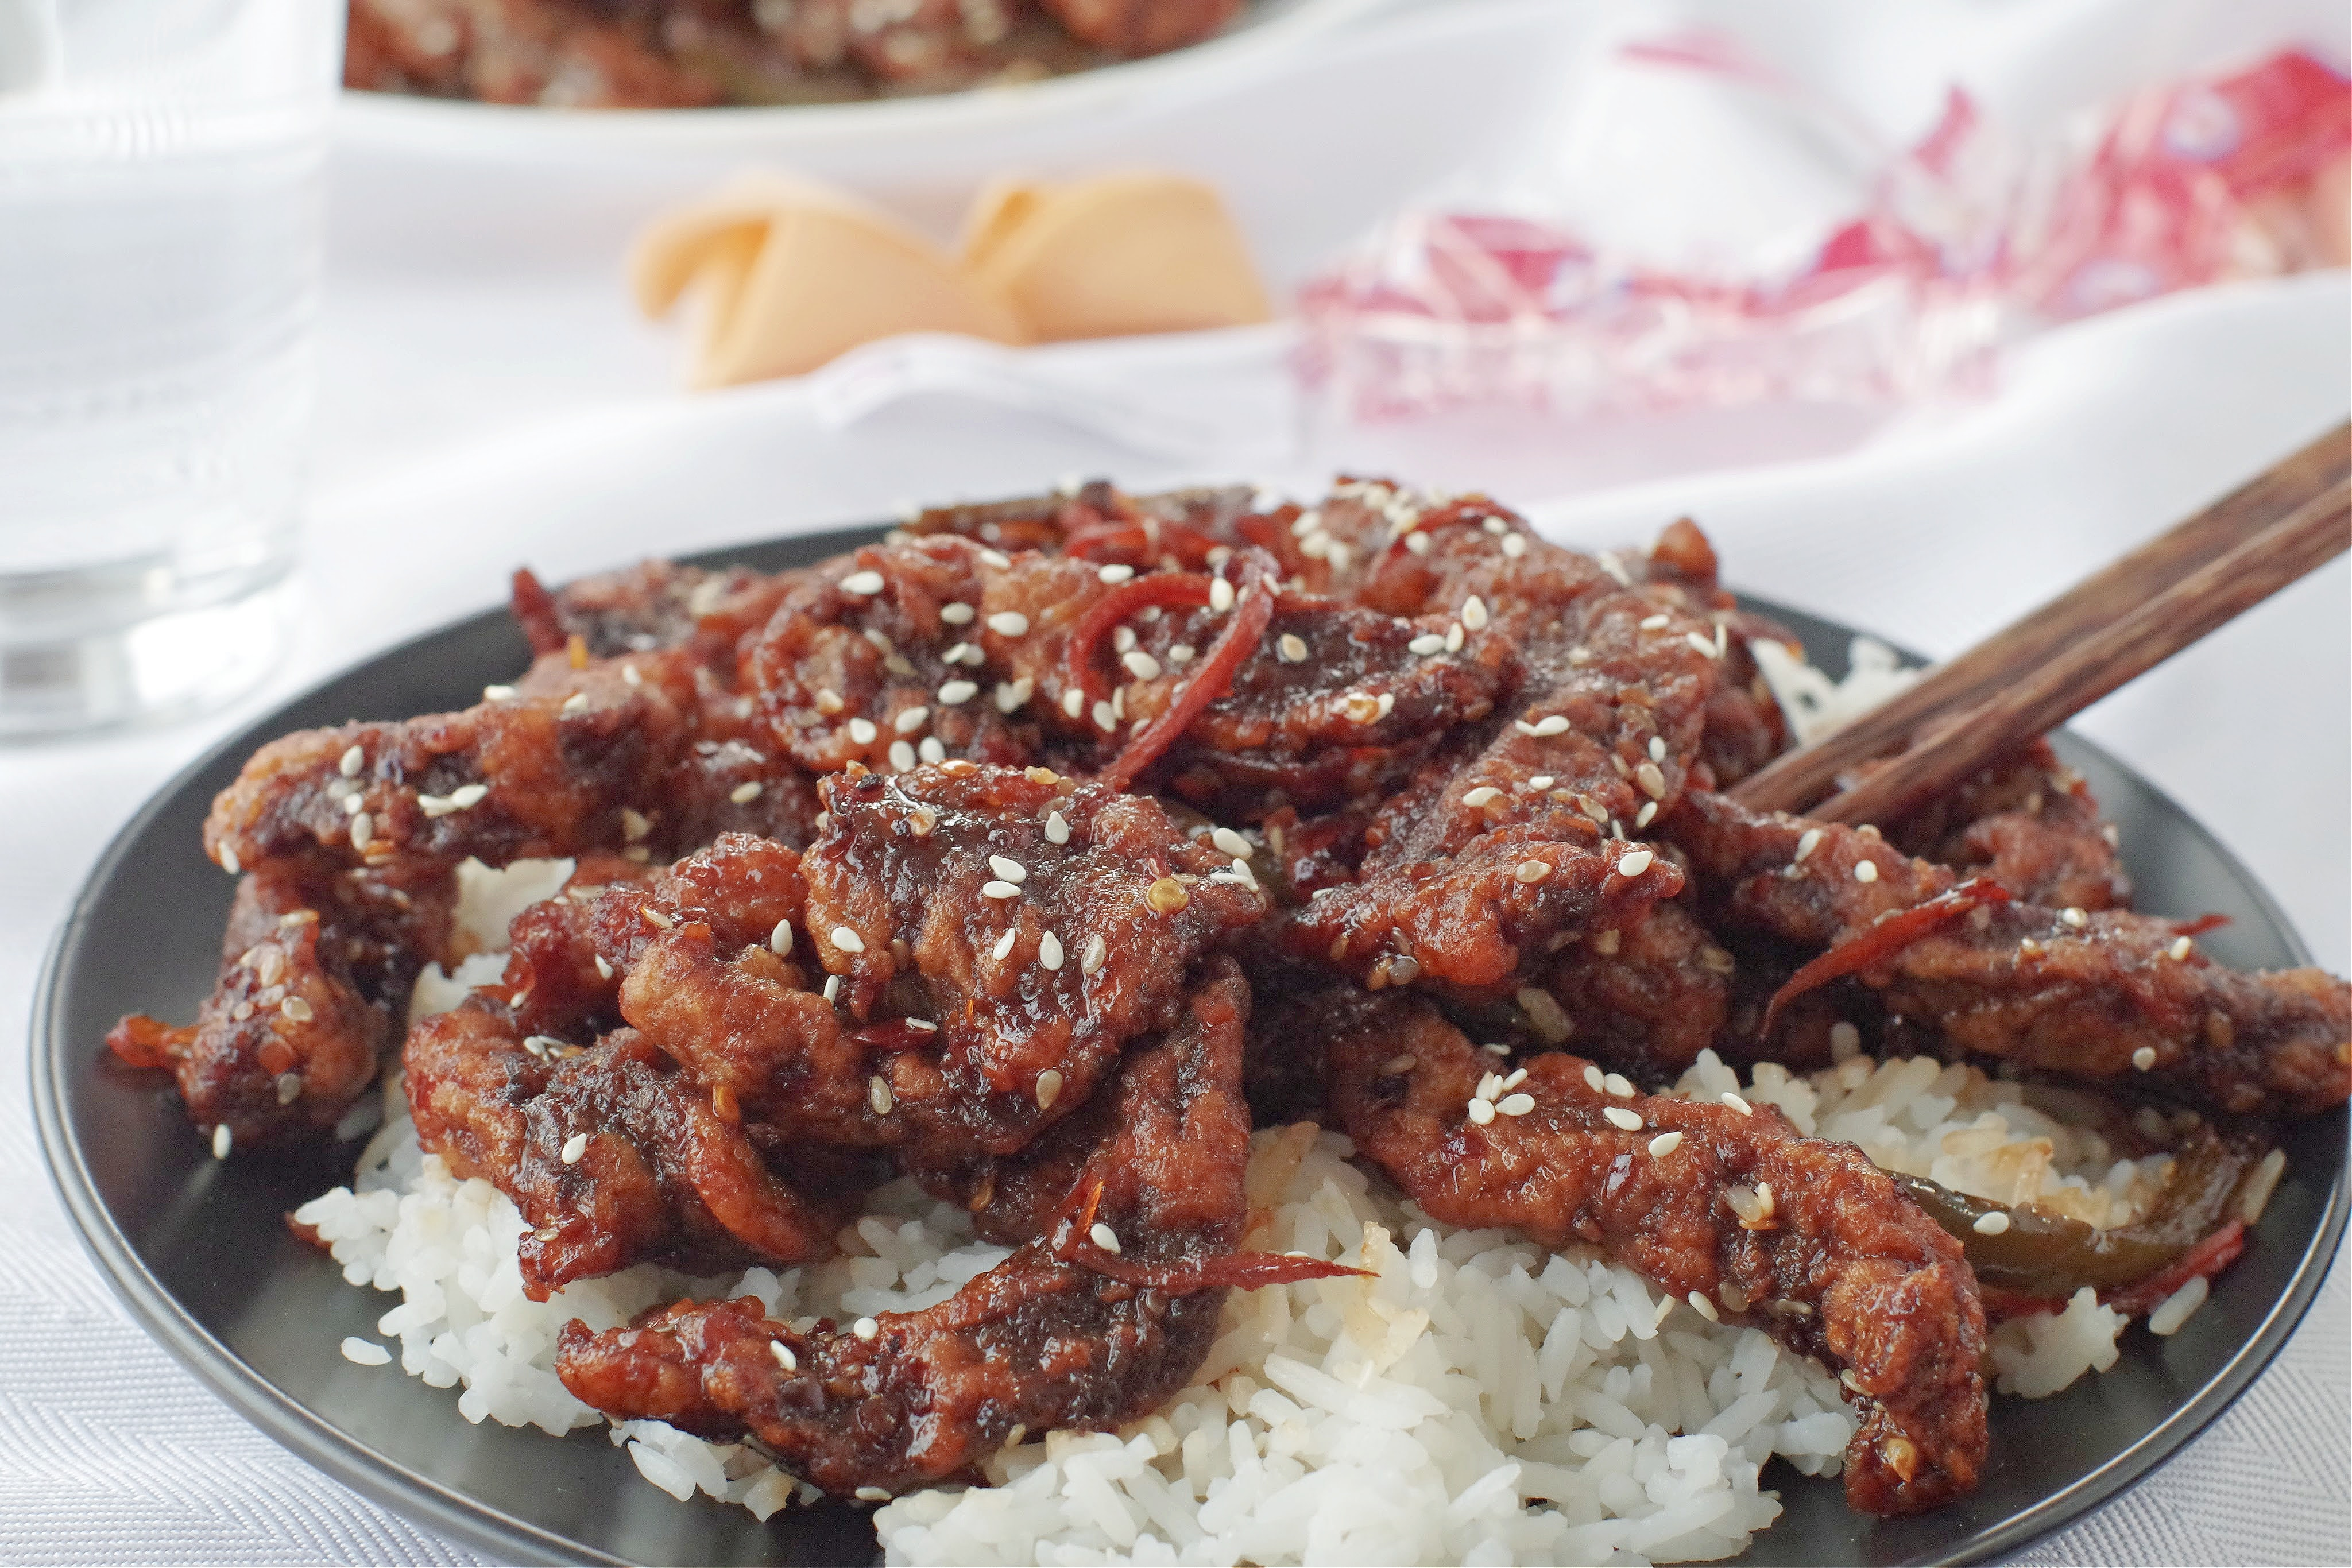 ginger beef over rice on a black plate on white table cloth, with fortune cookies